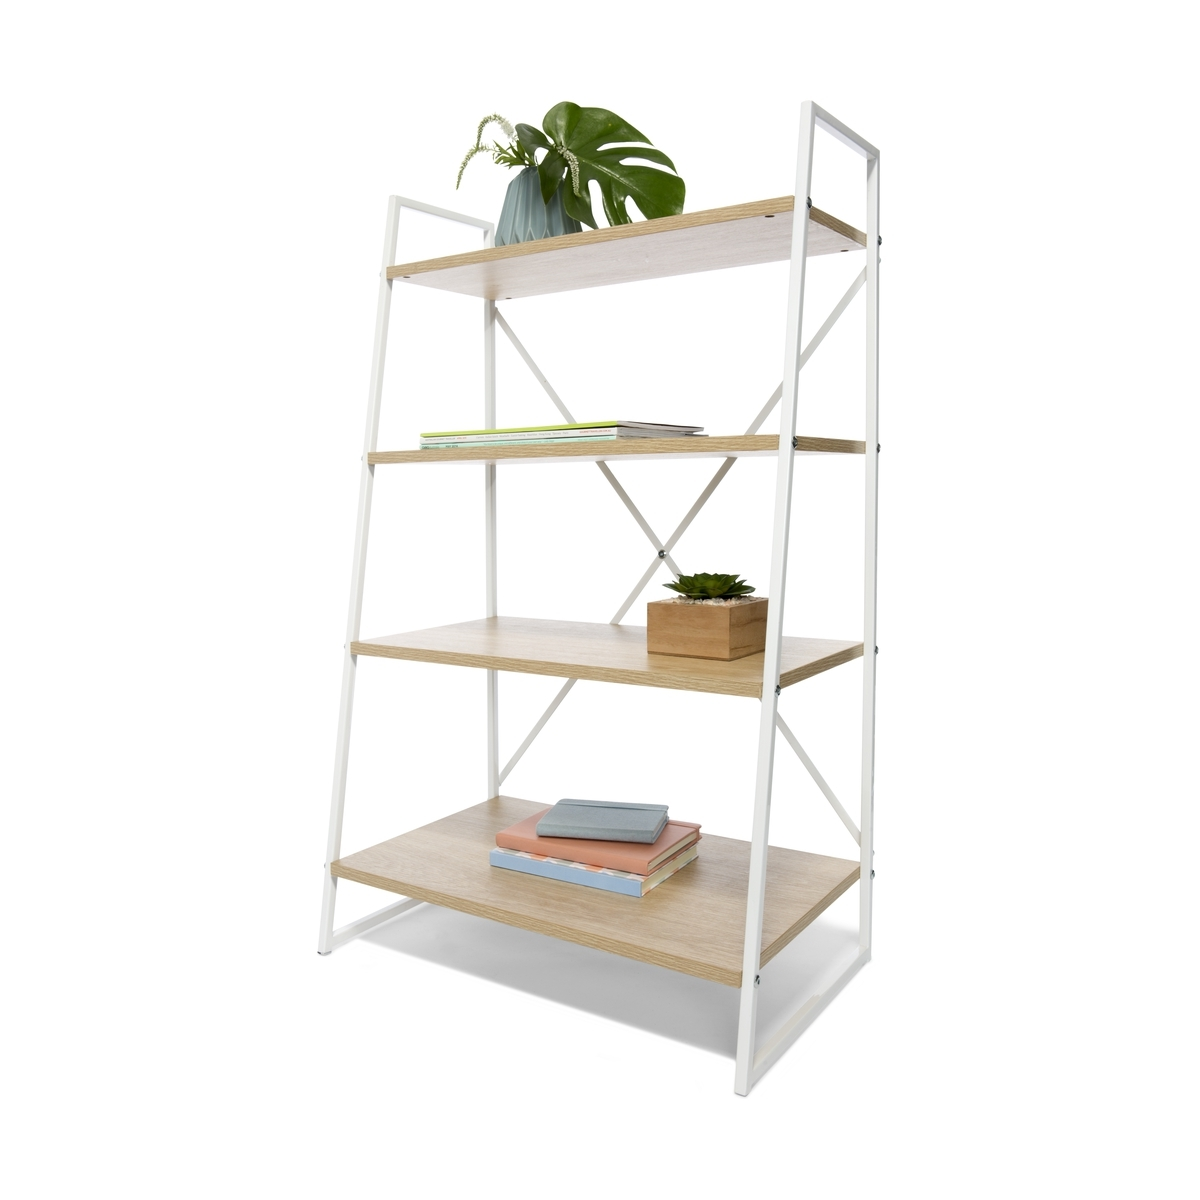 Image result for kmart scandi shelf